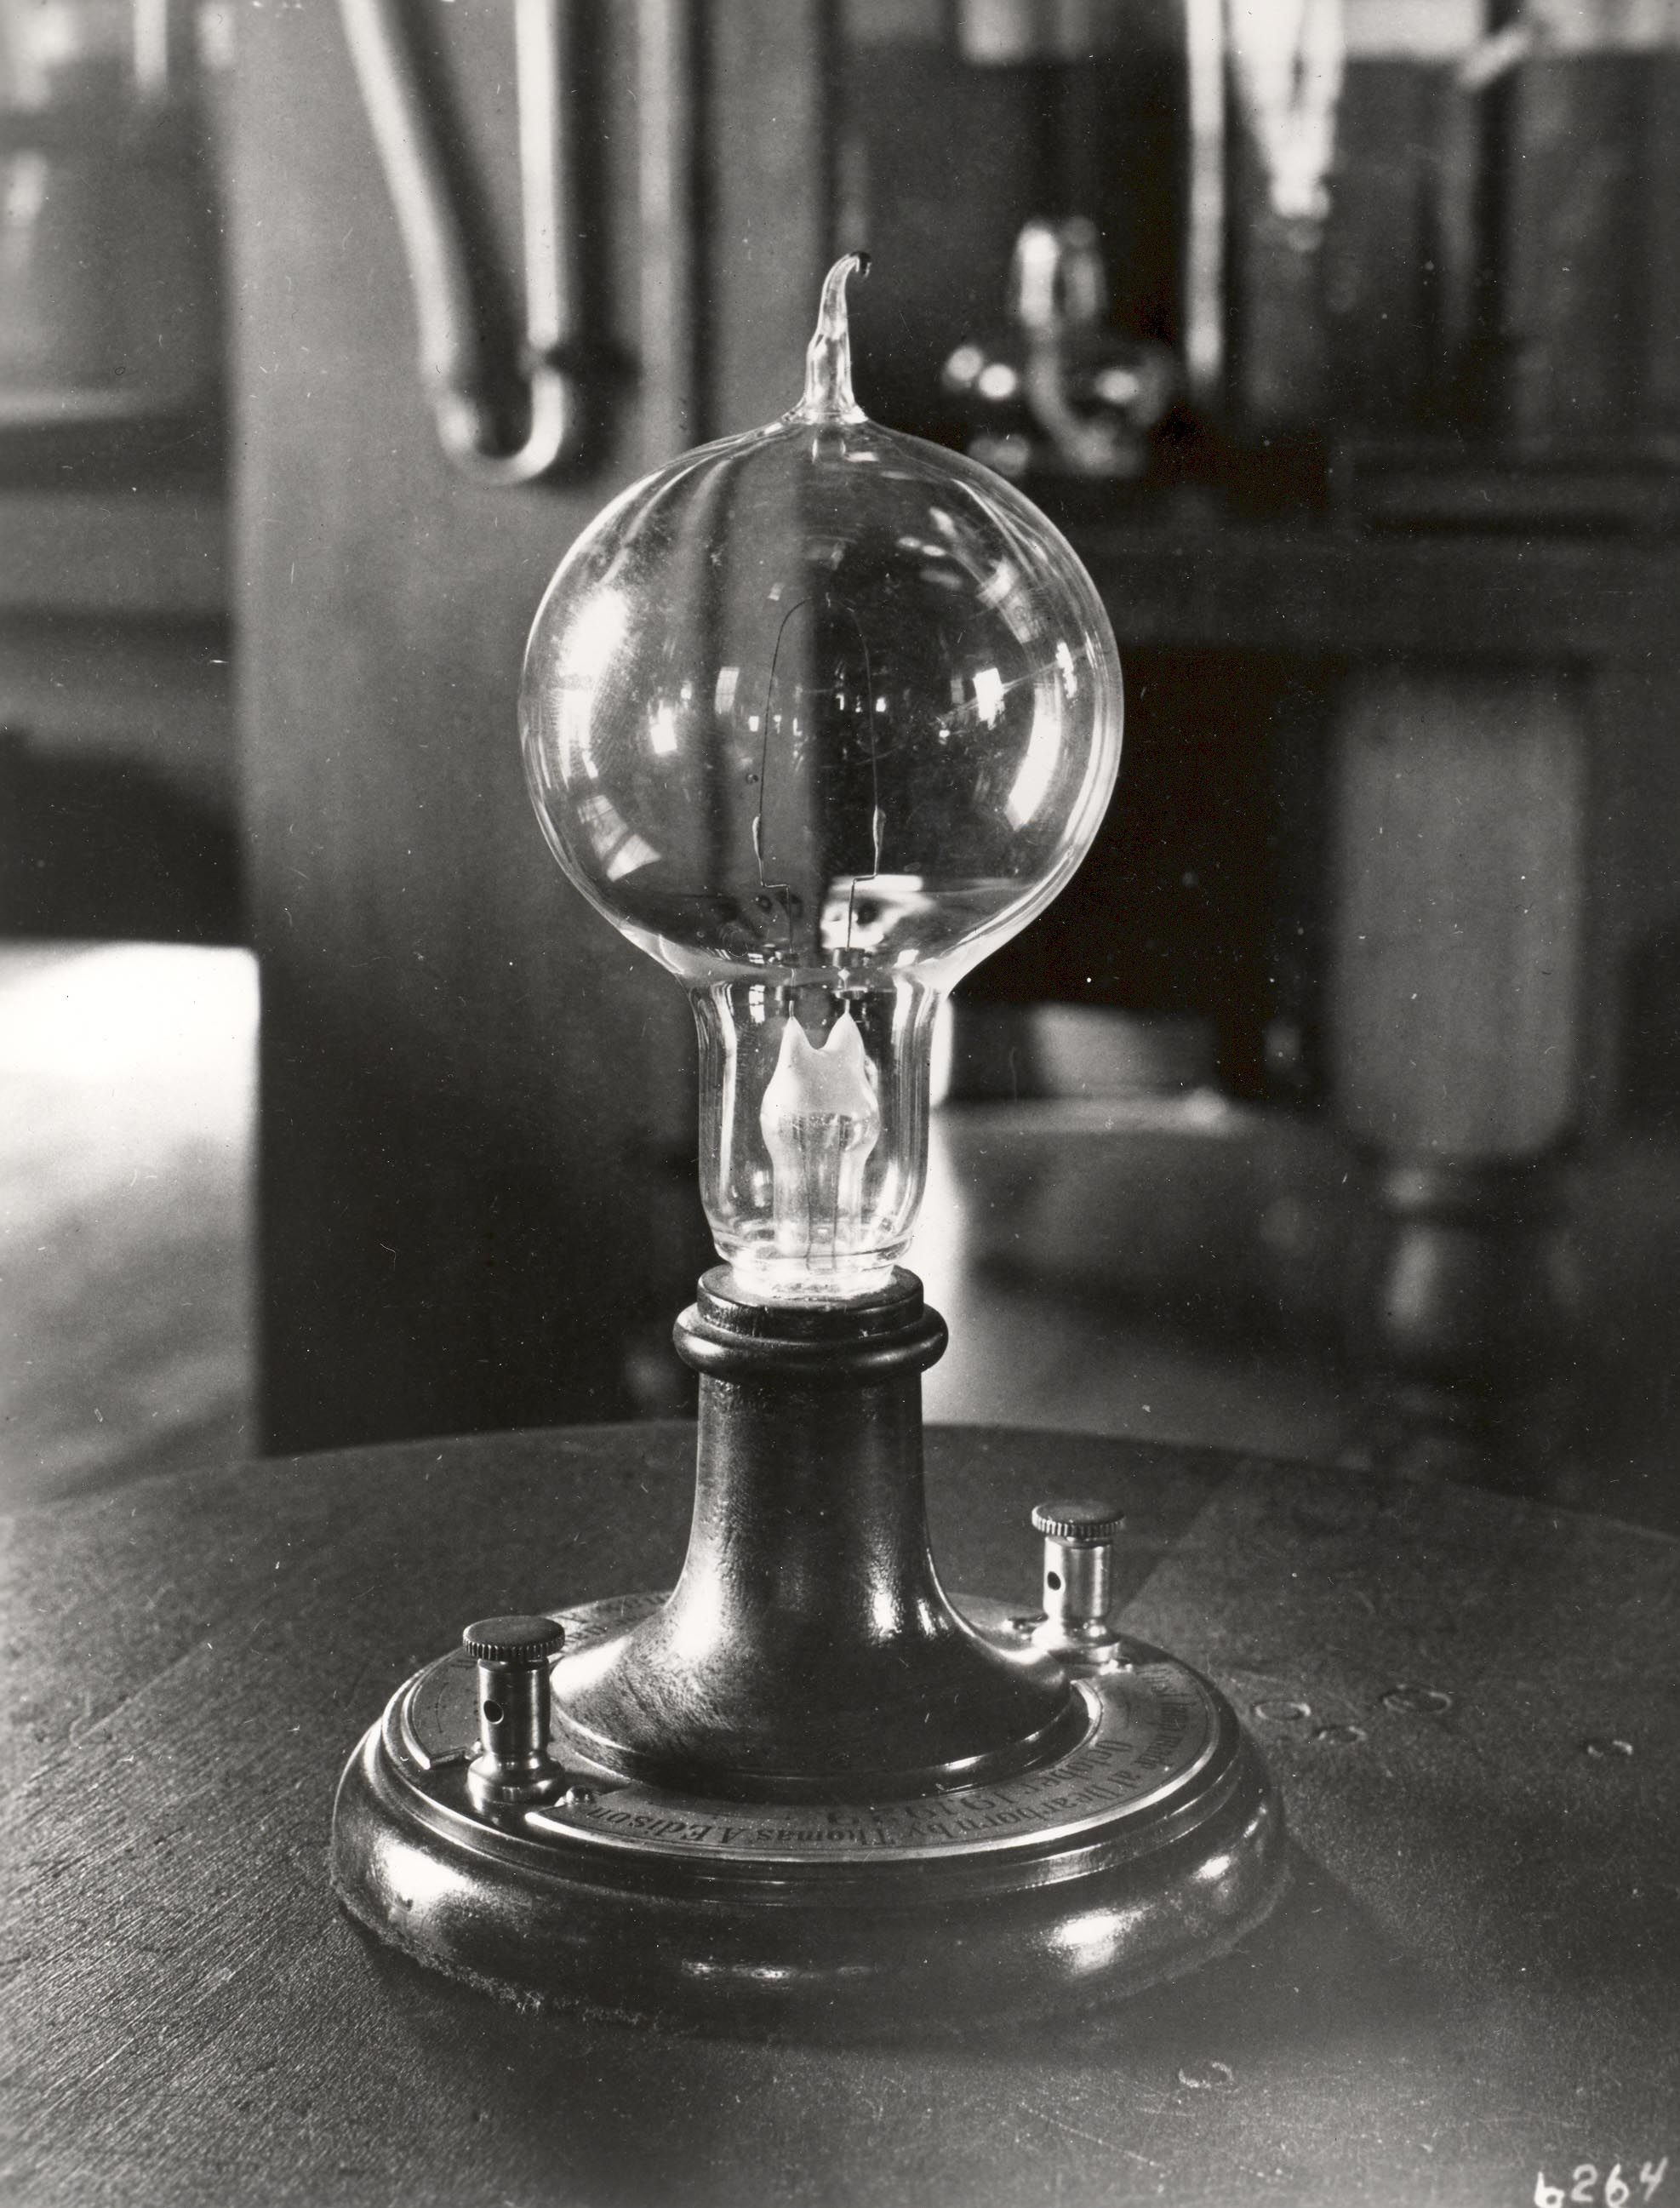 Corning invented the glass bulb for Thomas Edison's first